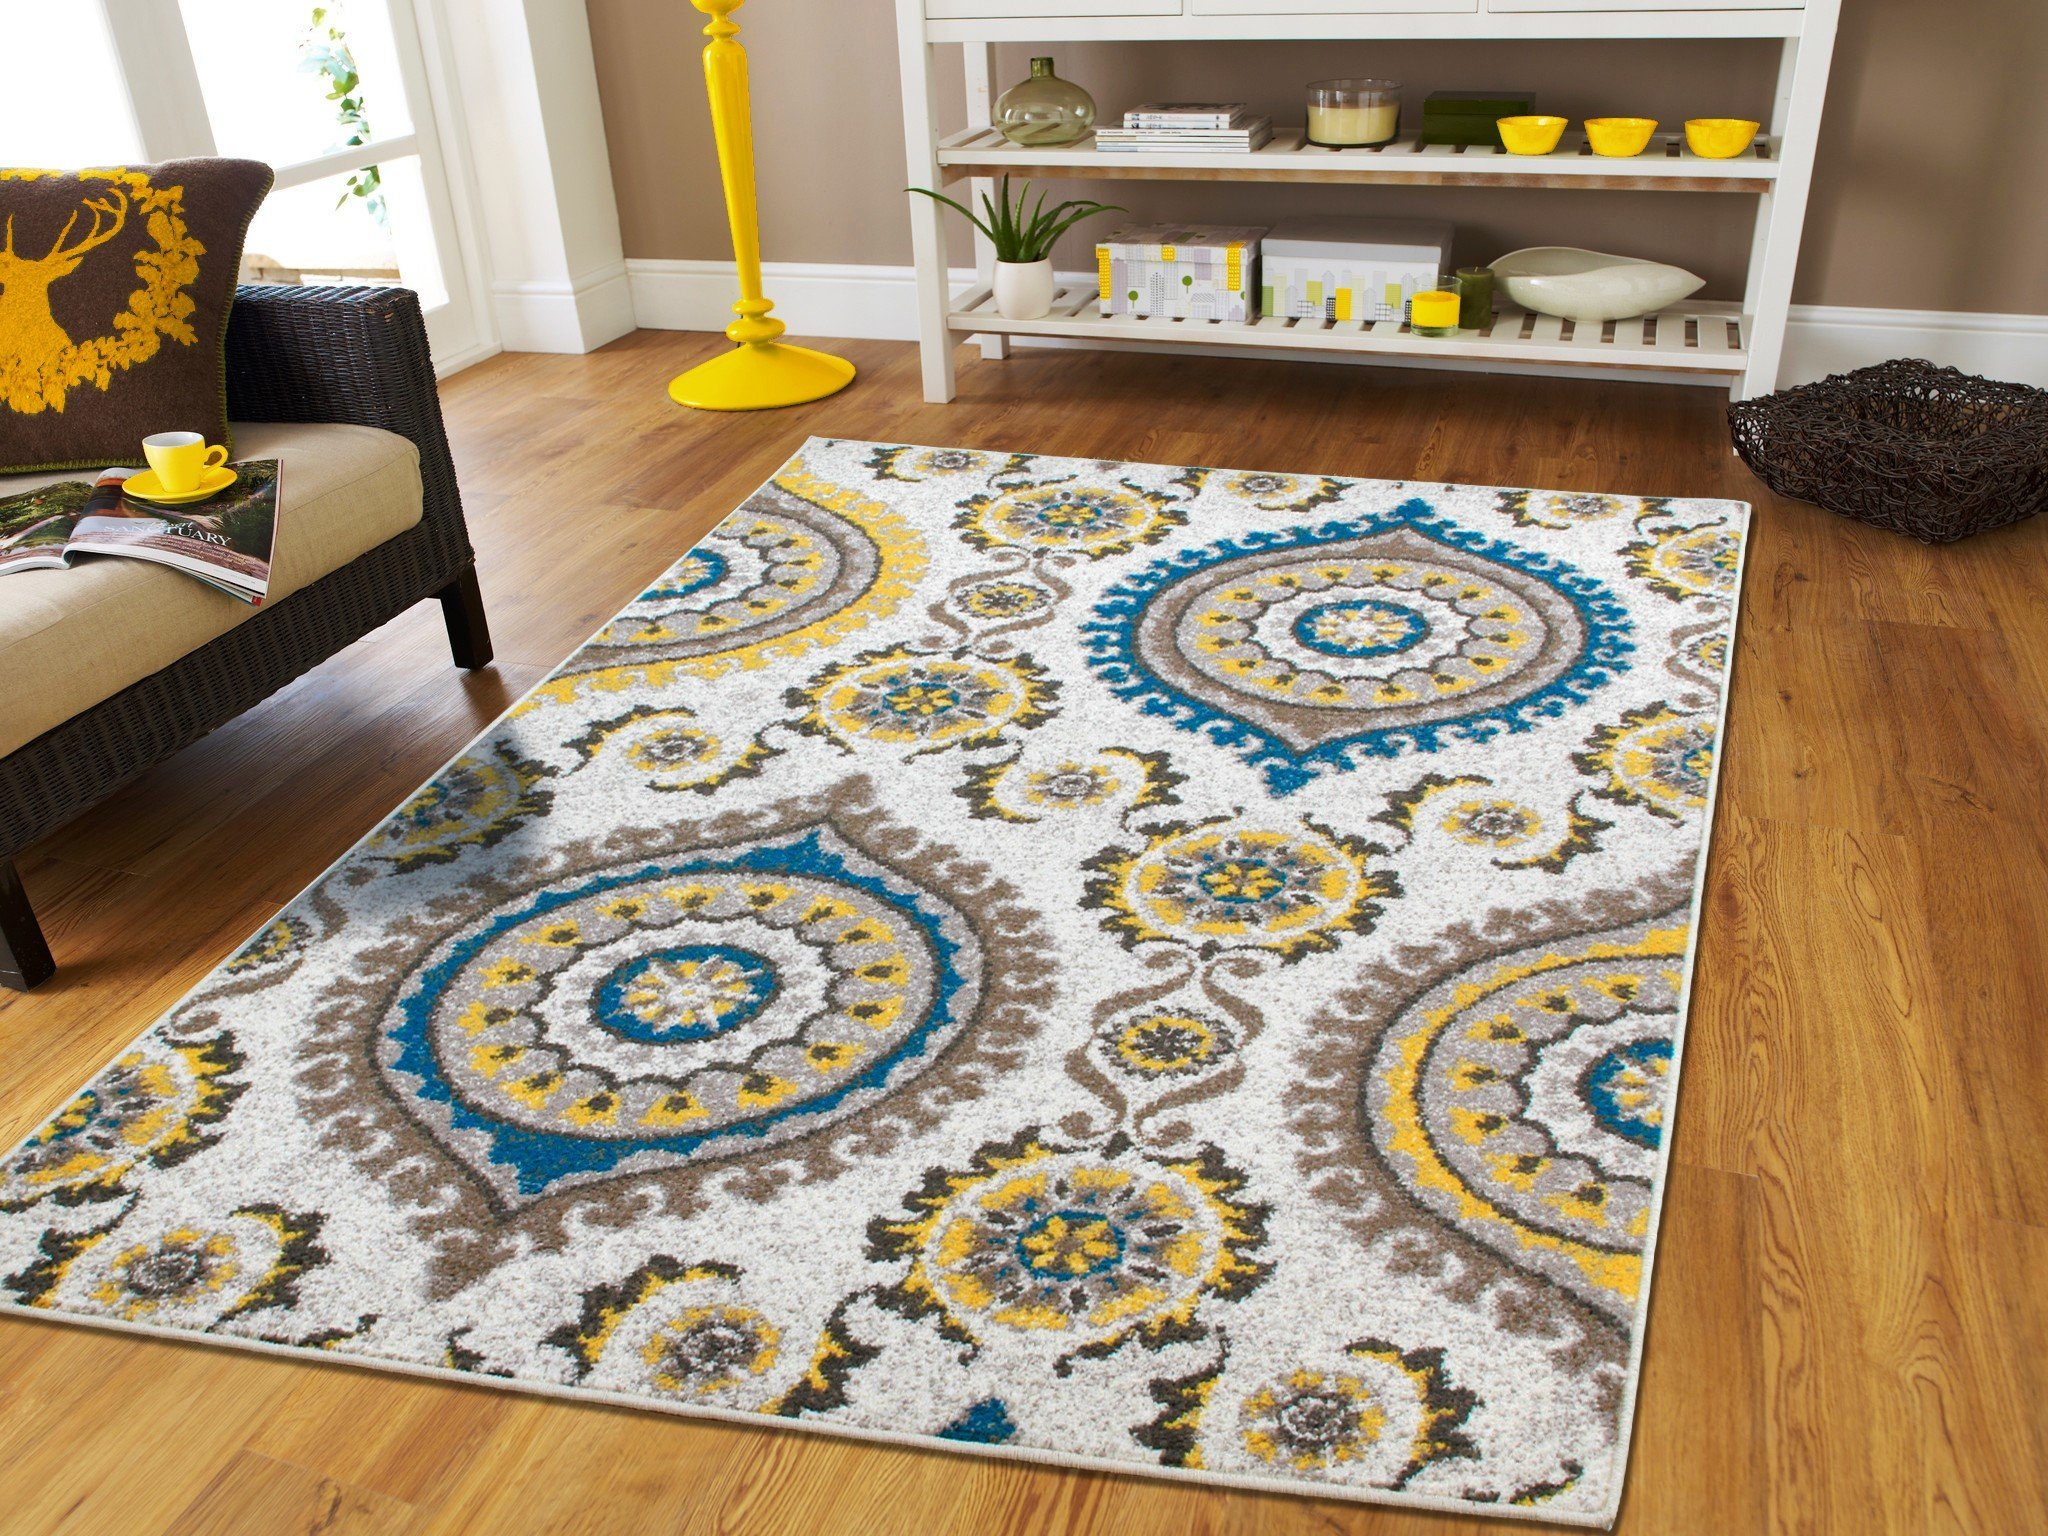 Buy Large 8x11 Modern Area Rug Comteporary Abstract Carpet